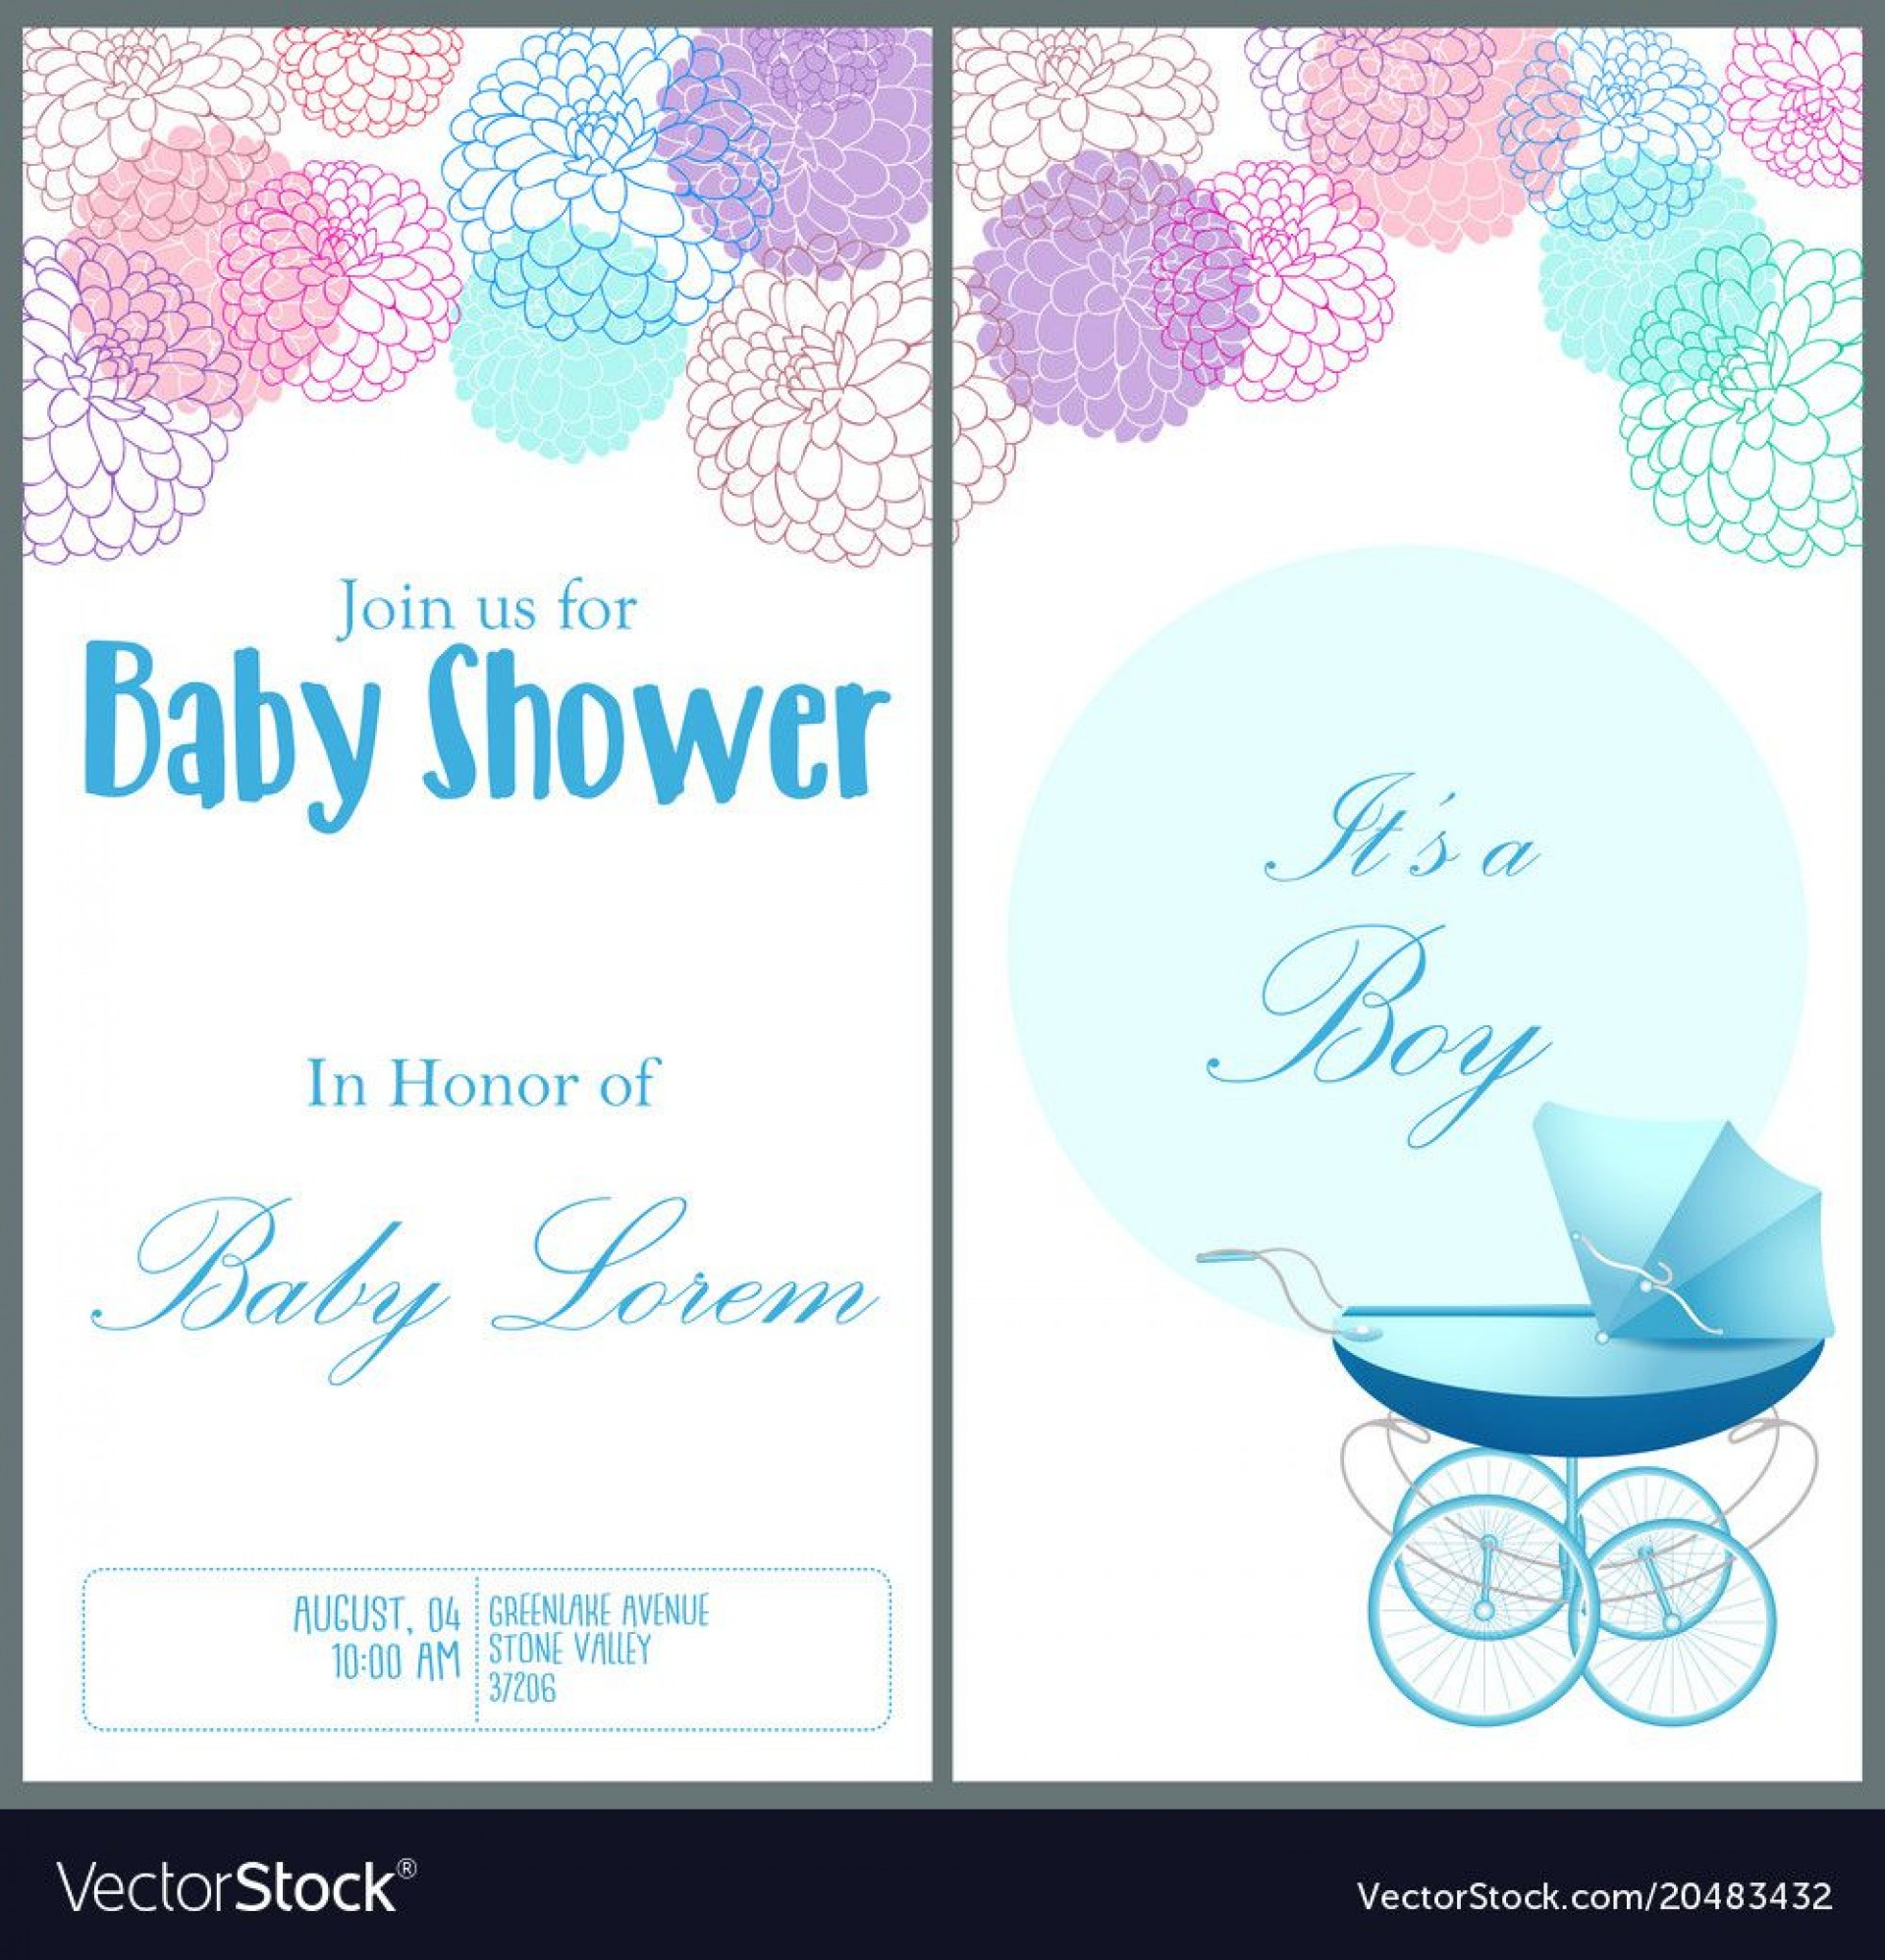 008 Best Baby Shower Card Template Highest Clarity  Microsoft Word Invitation Design Online Printable Free1920